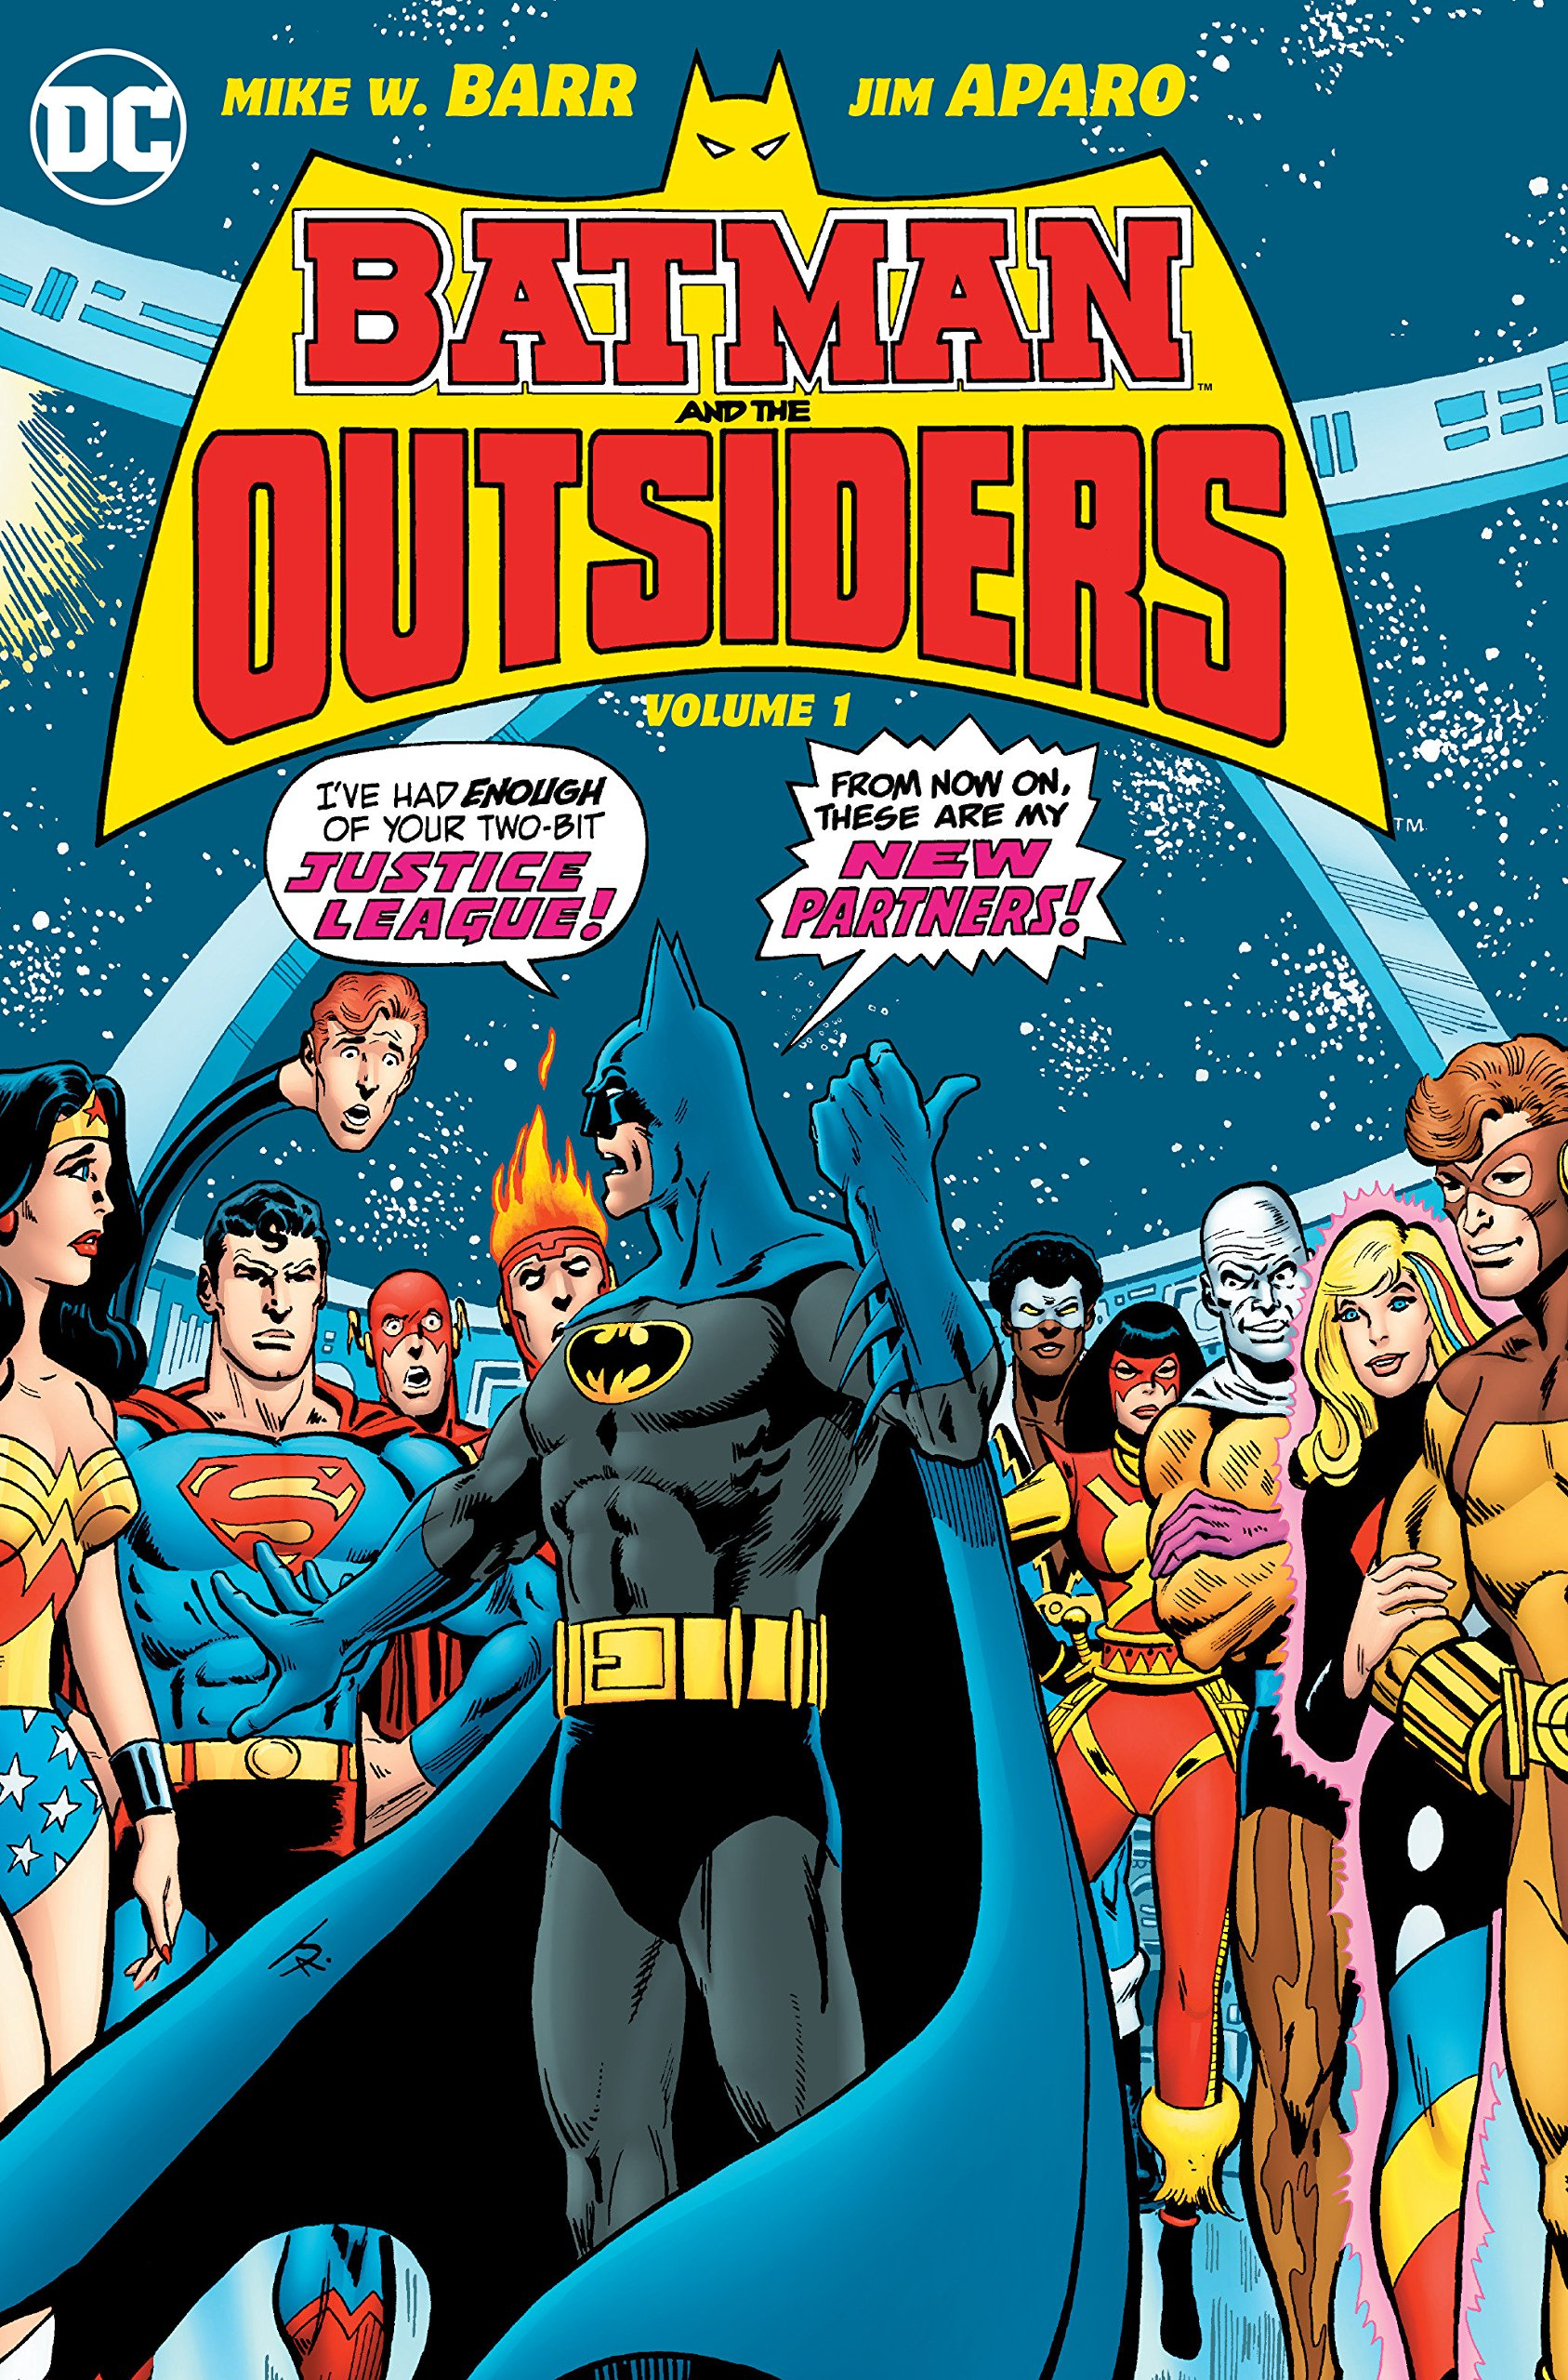 Batman The Outsiders Hc Vol 1 Batman And The Outsiders Amazon Co Uk Barr Mike 9781401268121 Books